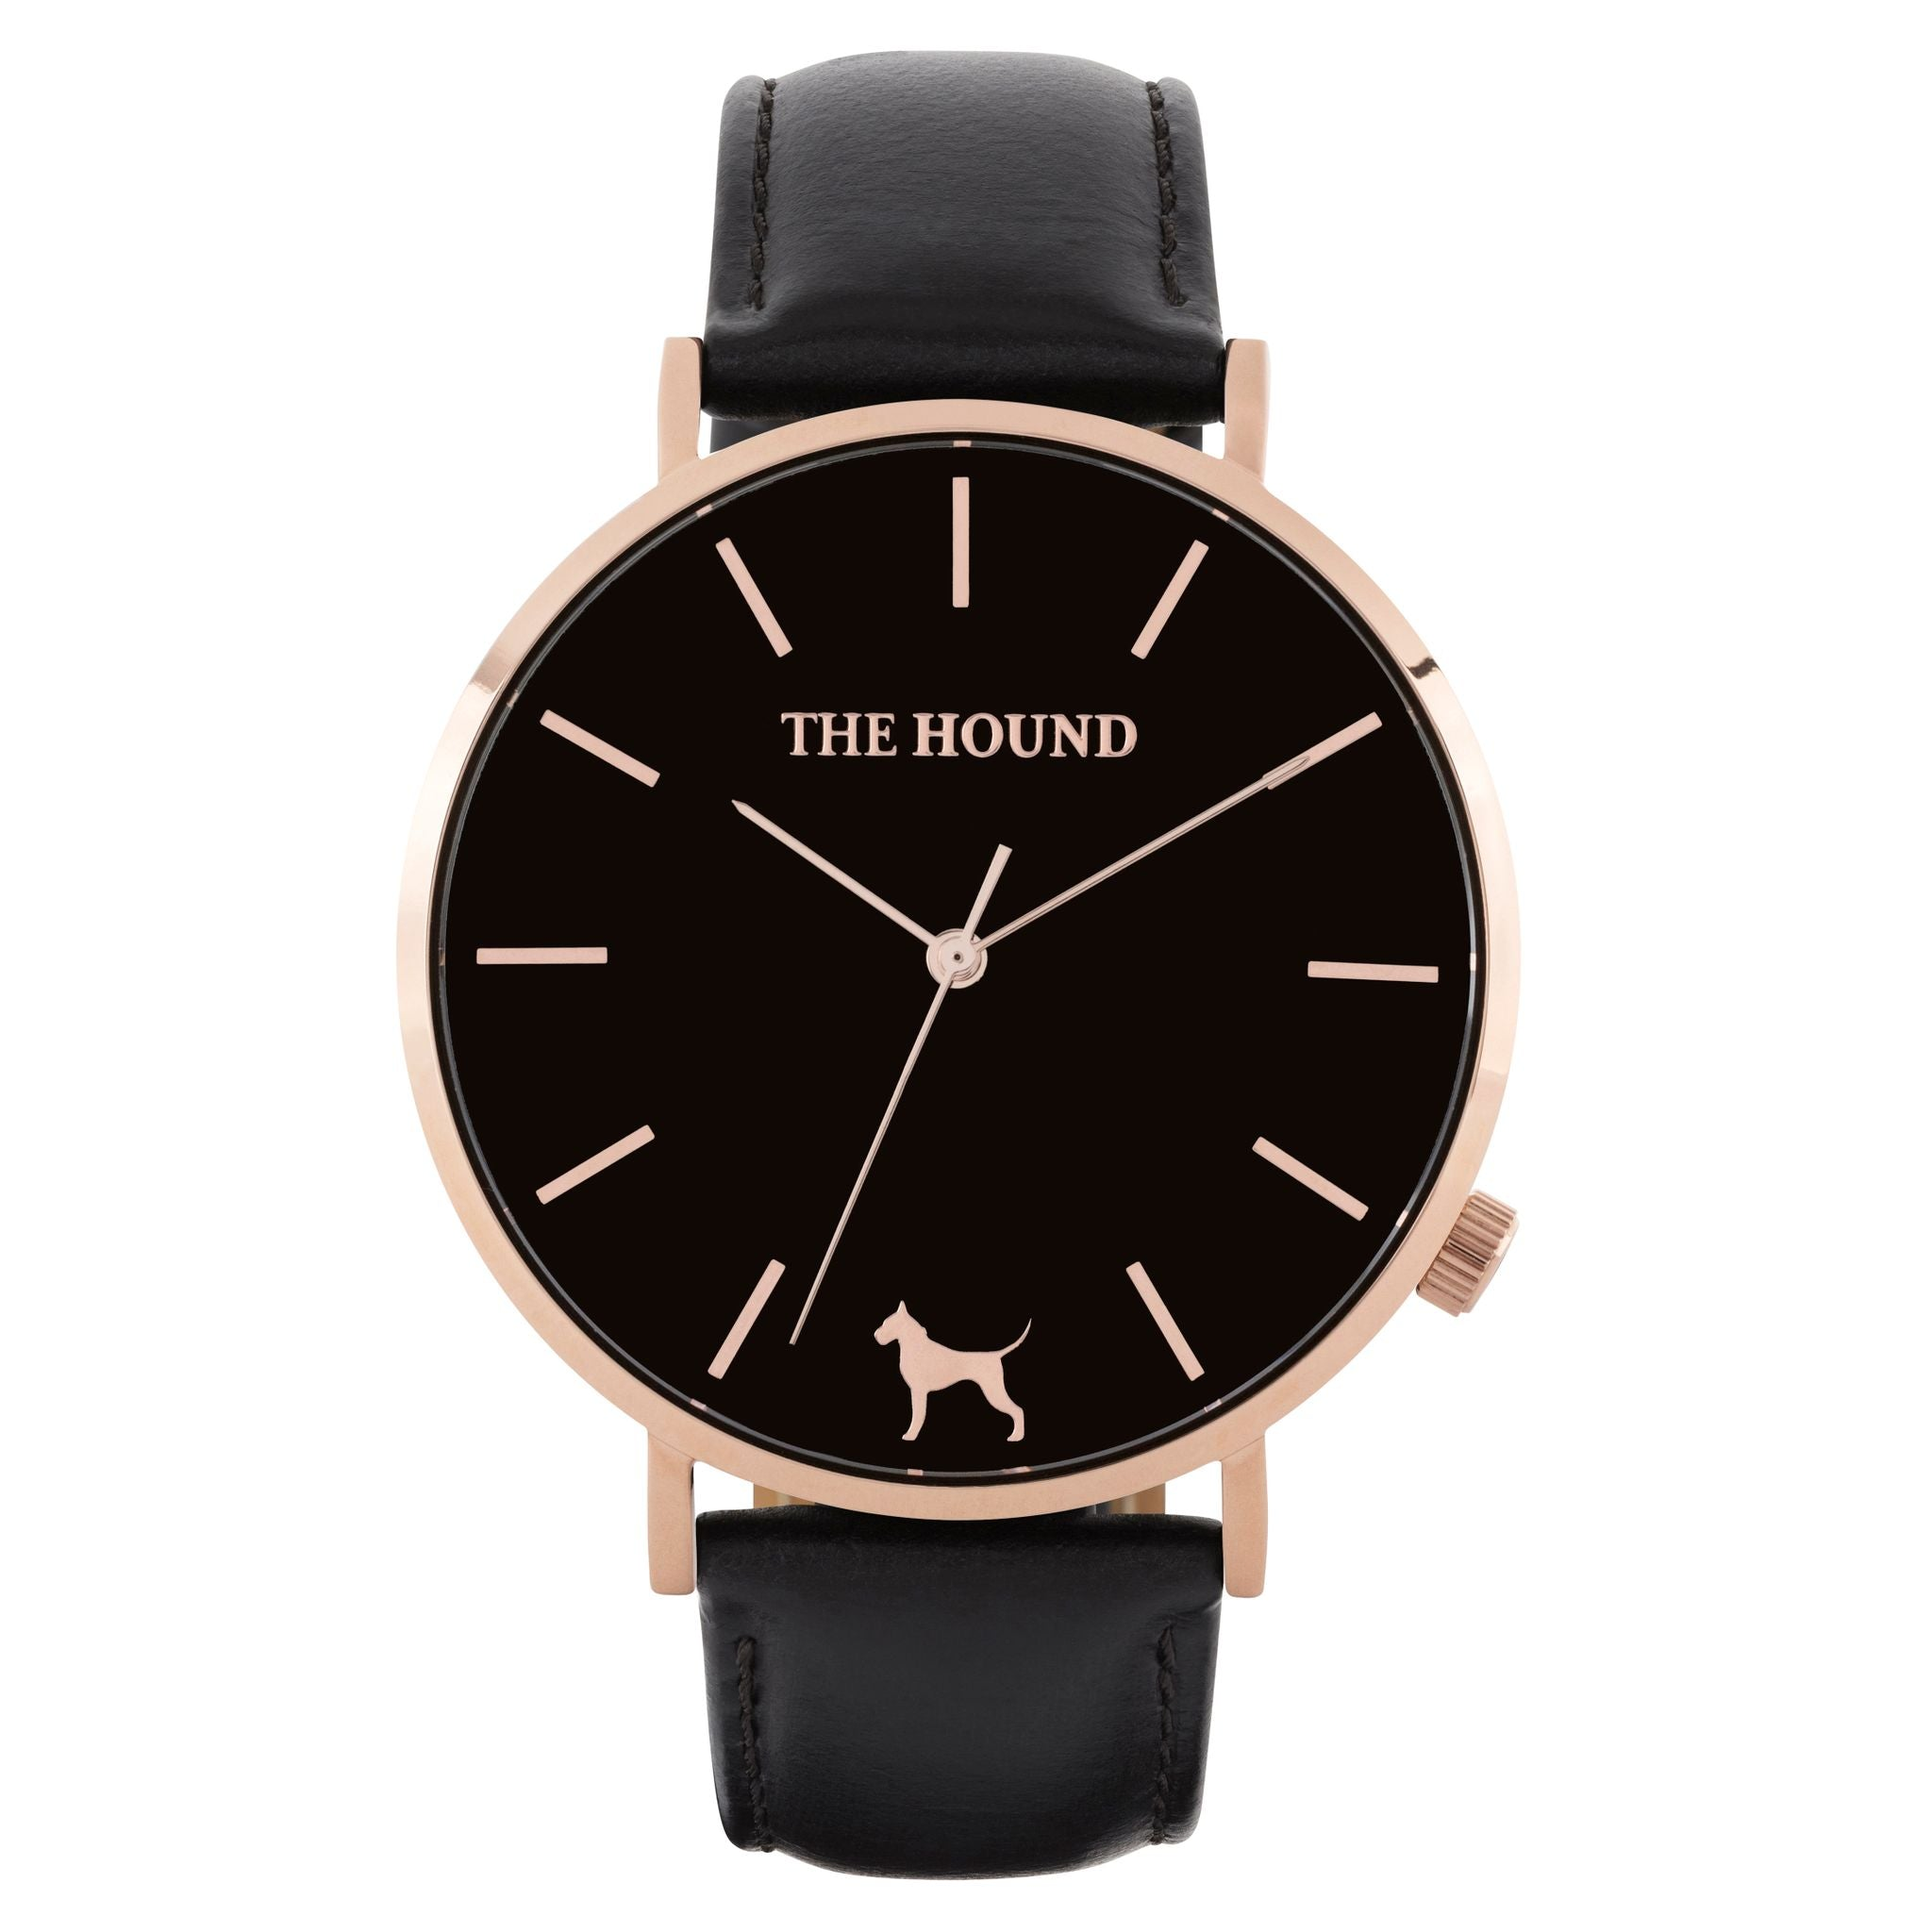 Rose gold & black face watch with black leather